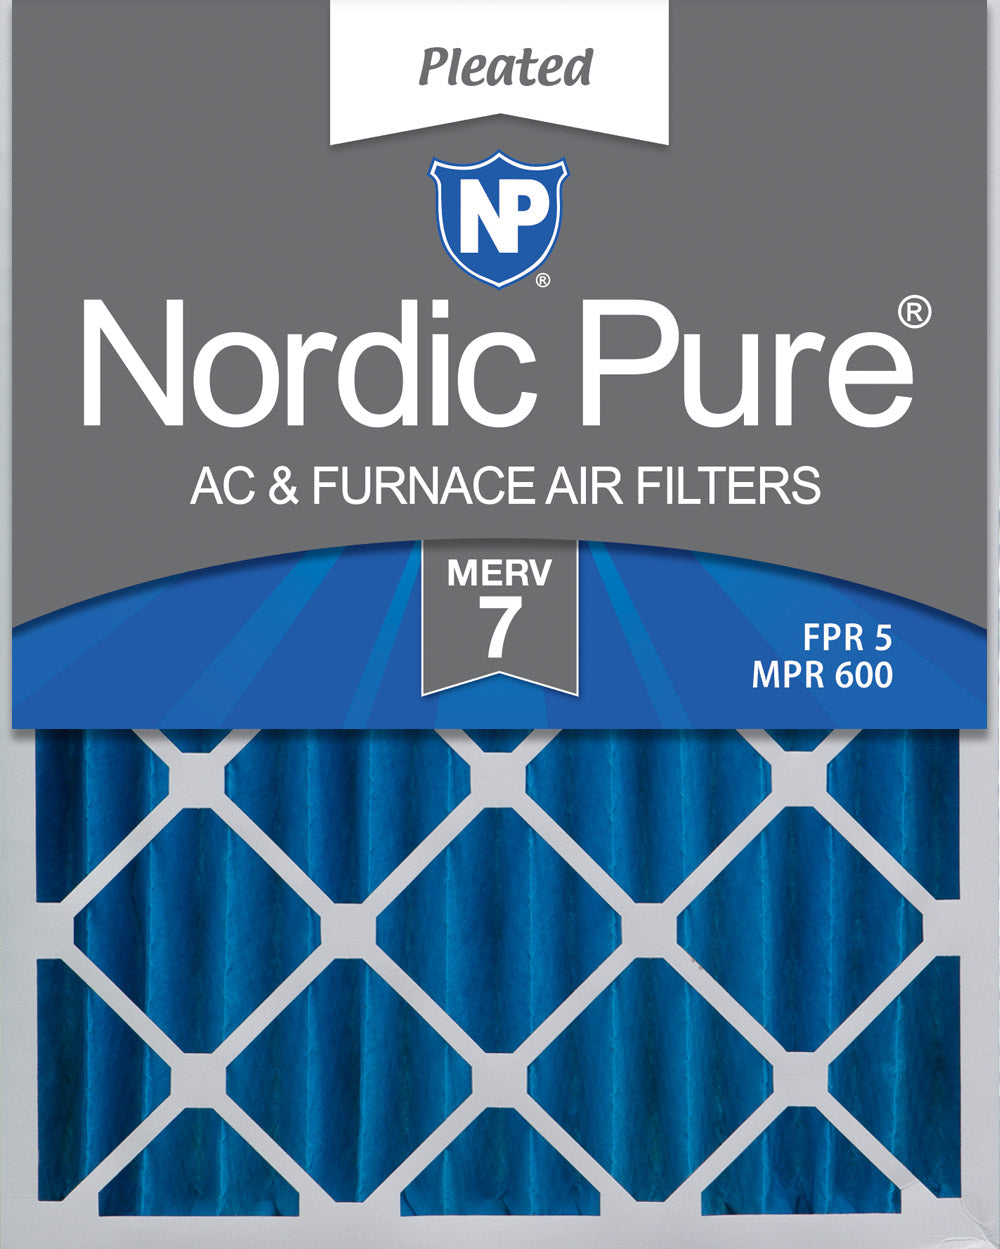 20x25x4 (3 5/8) Pleated MERV 7 Air Filters 1 Pack